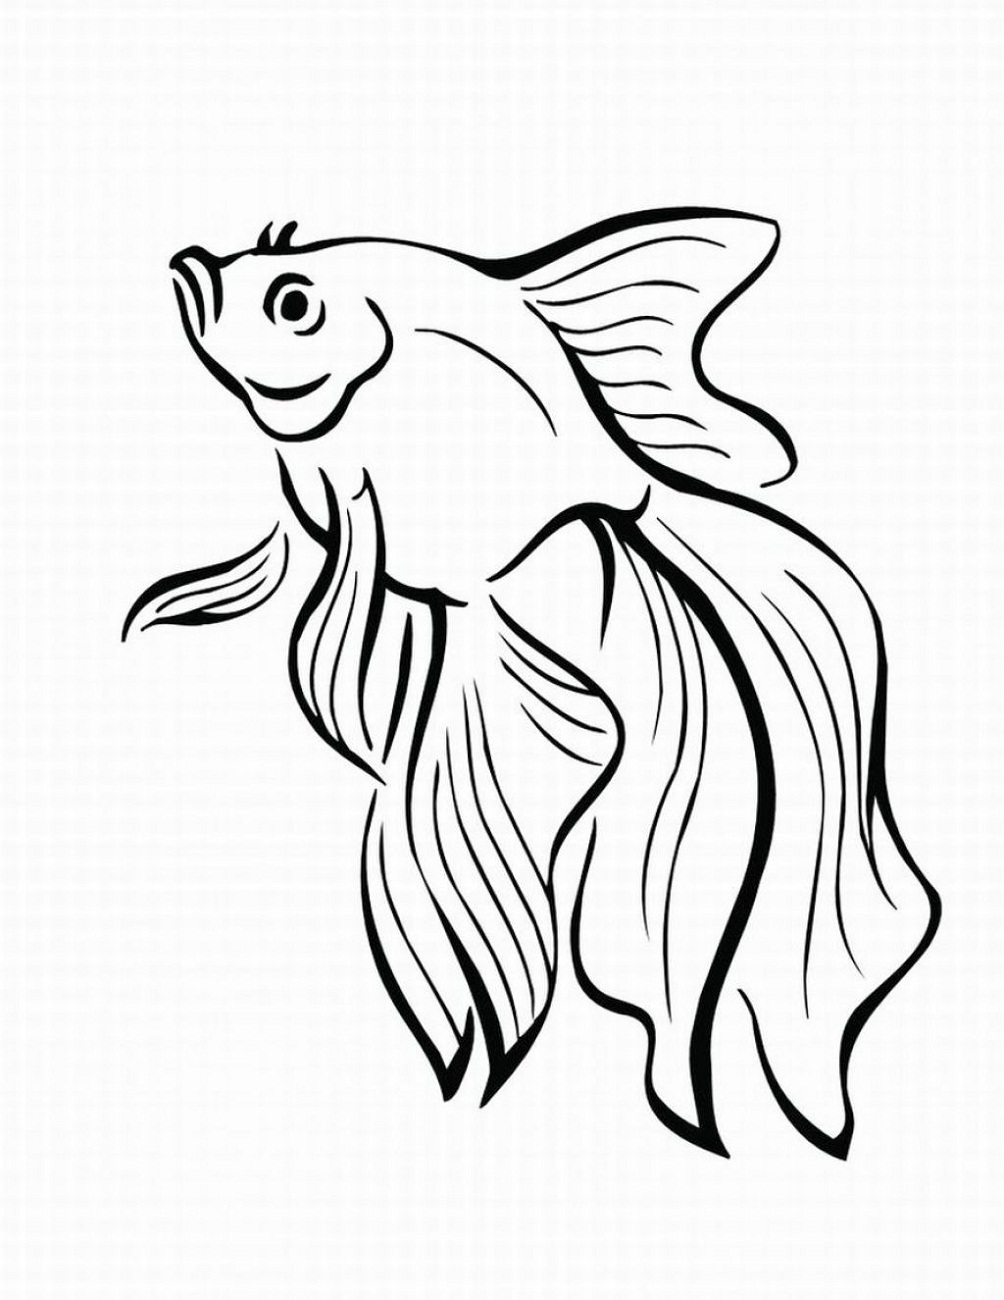 fish-color-pages-adult